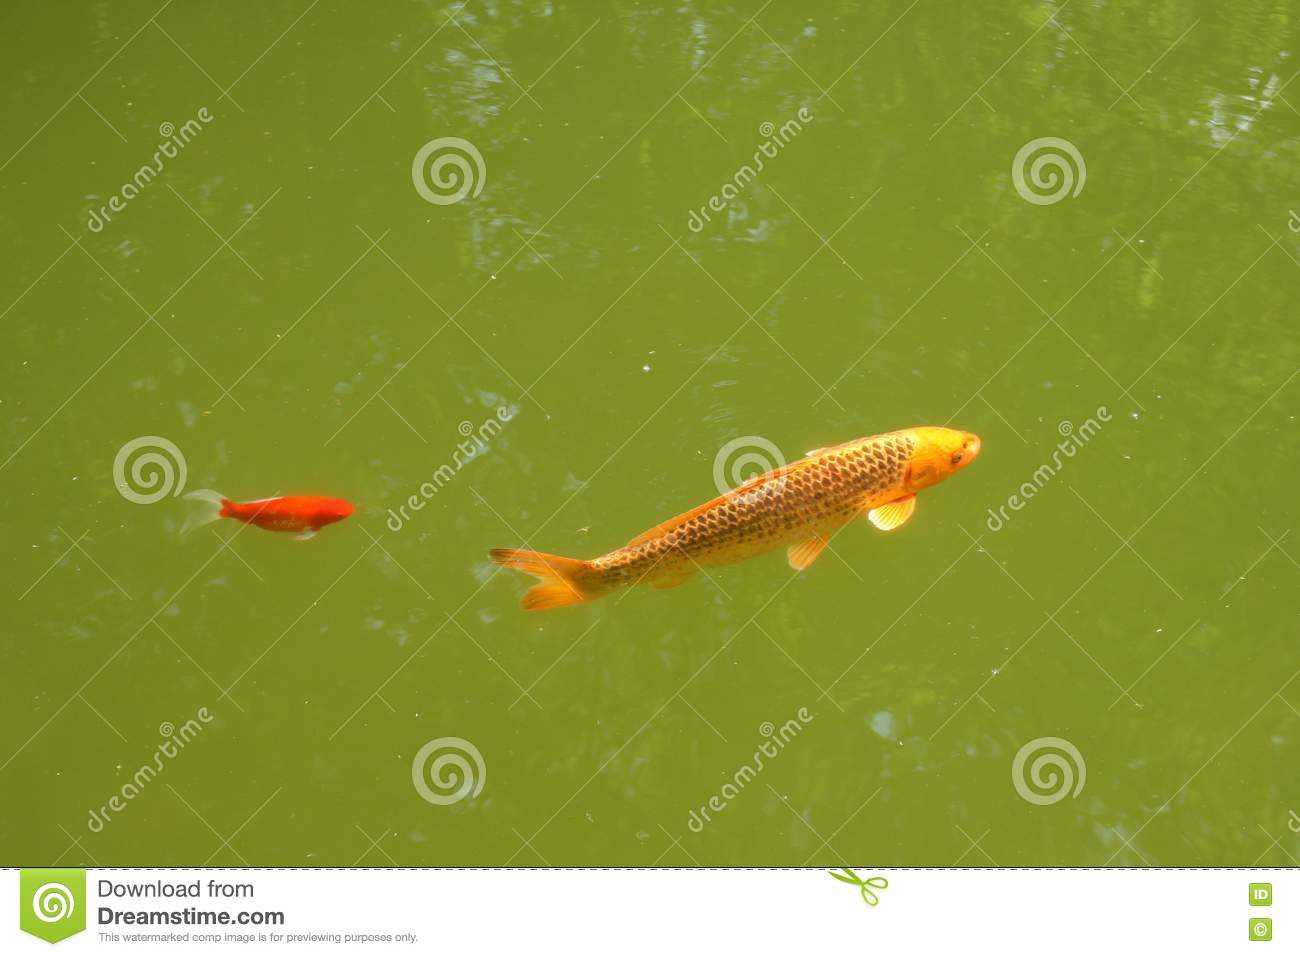 Decorative carp or koi stock photos image 19793653 - Decoratie kooi ...